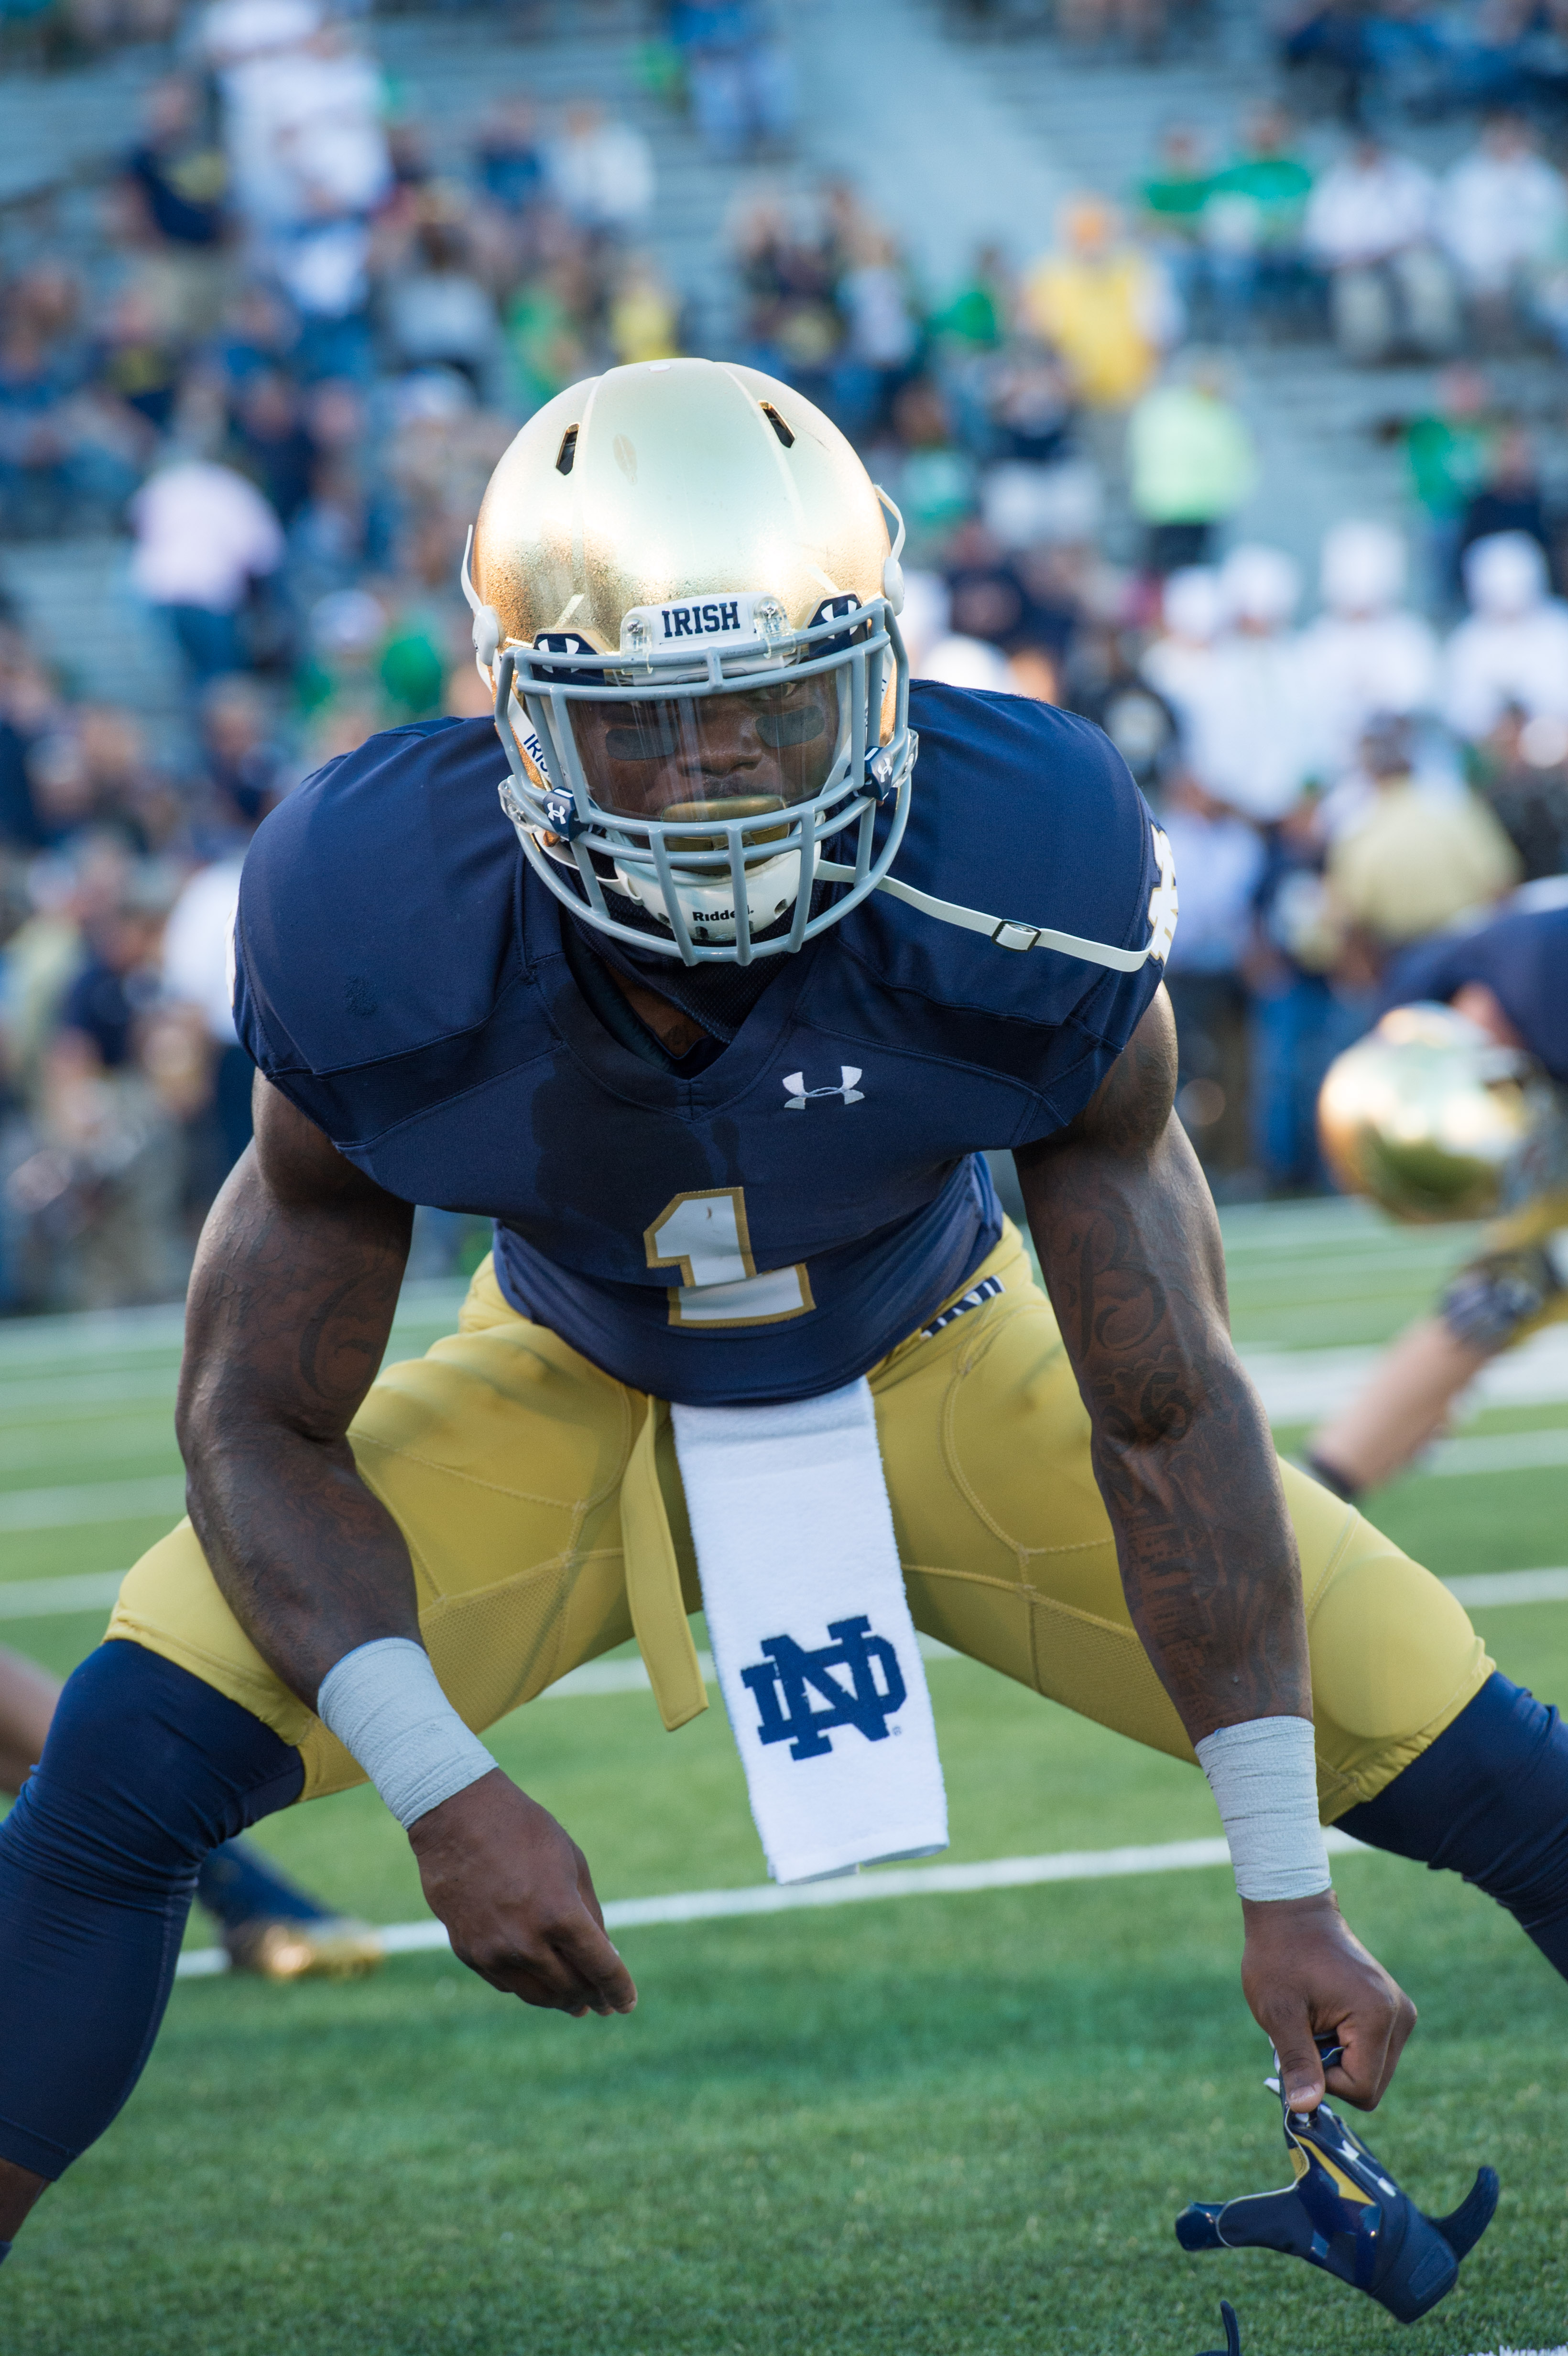 File University Of Notre Dame Running Back Greg Bryant Stretches Sept 6 2014 Before A Football Game At Notre Dame Stadium In South Bend Ind 140906 D Kc128 923 Jpg Wikimedia Commons